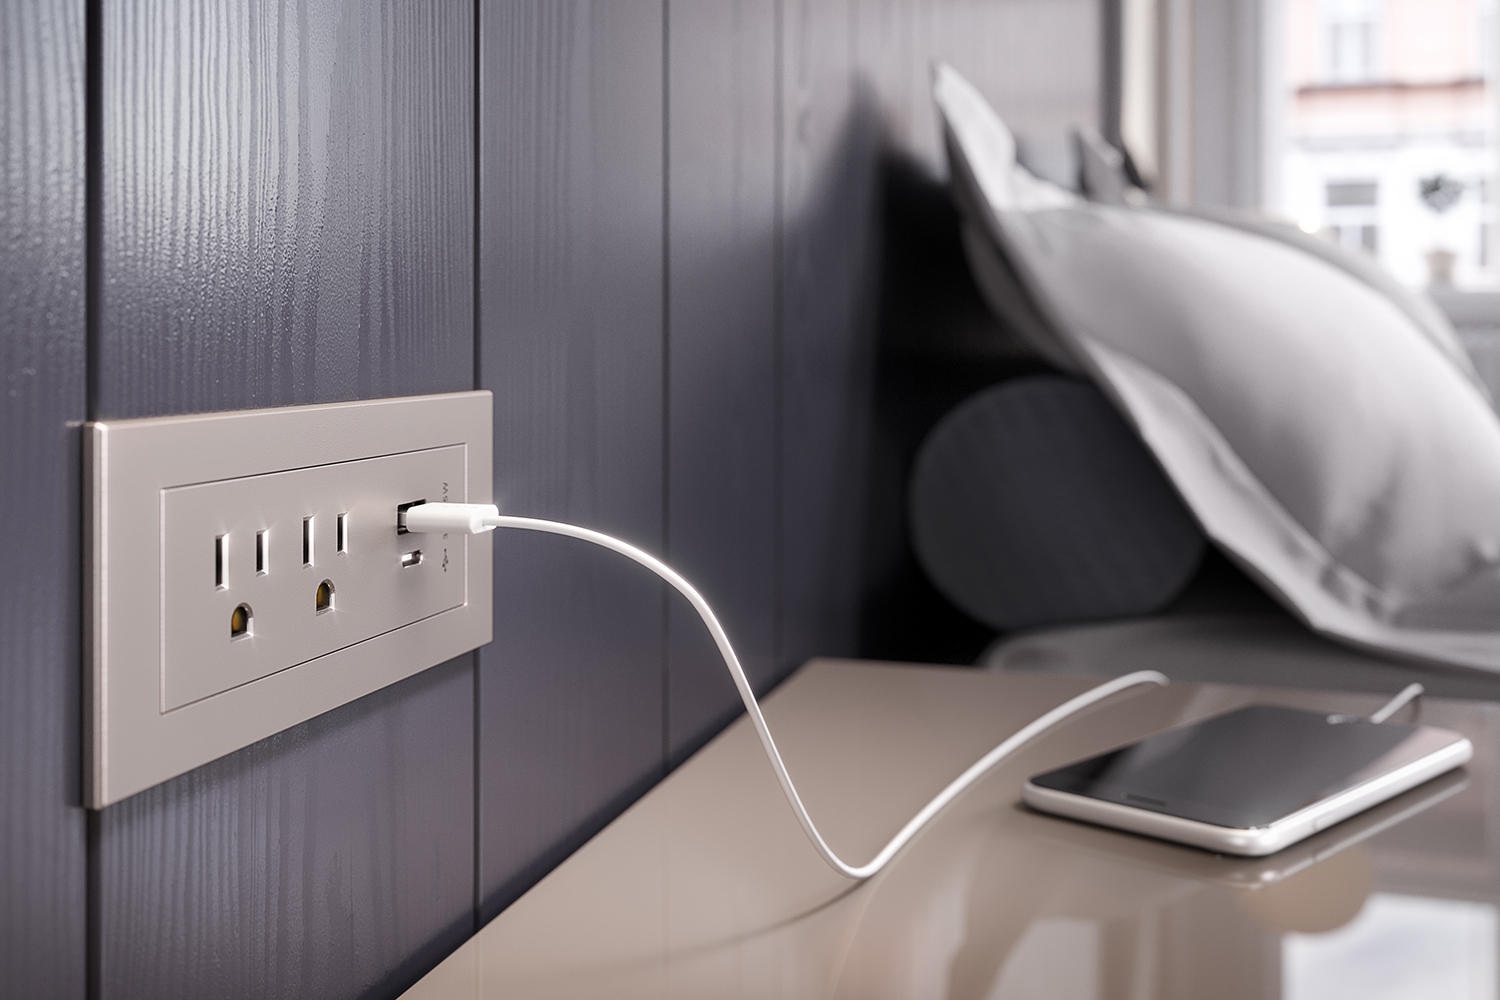 Photo of an iPhone charger going into a wall